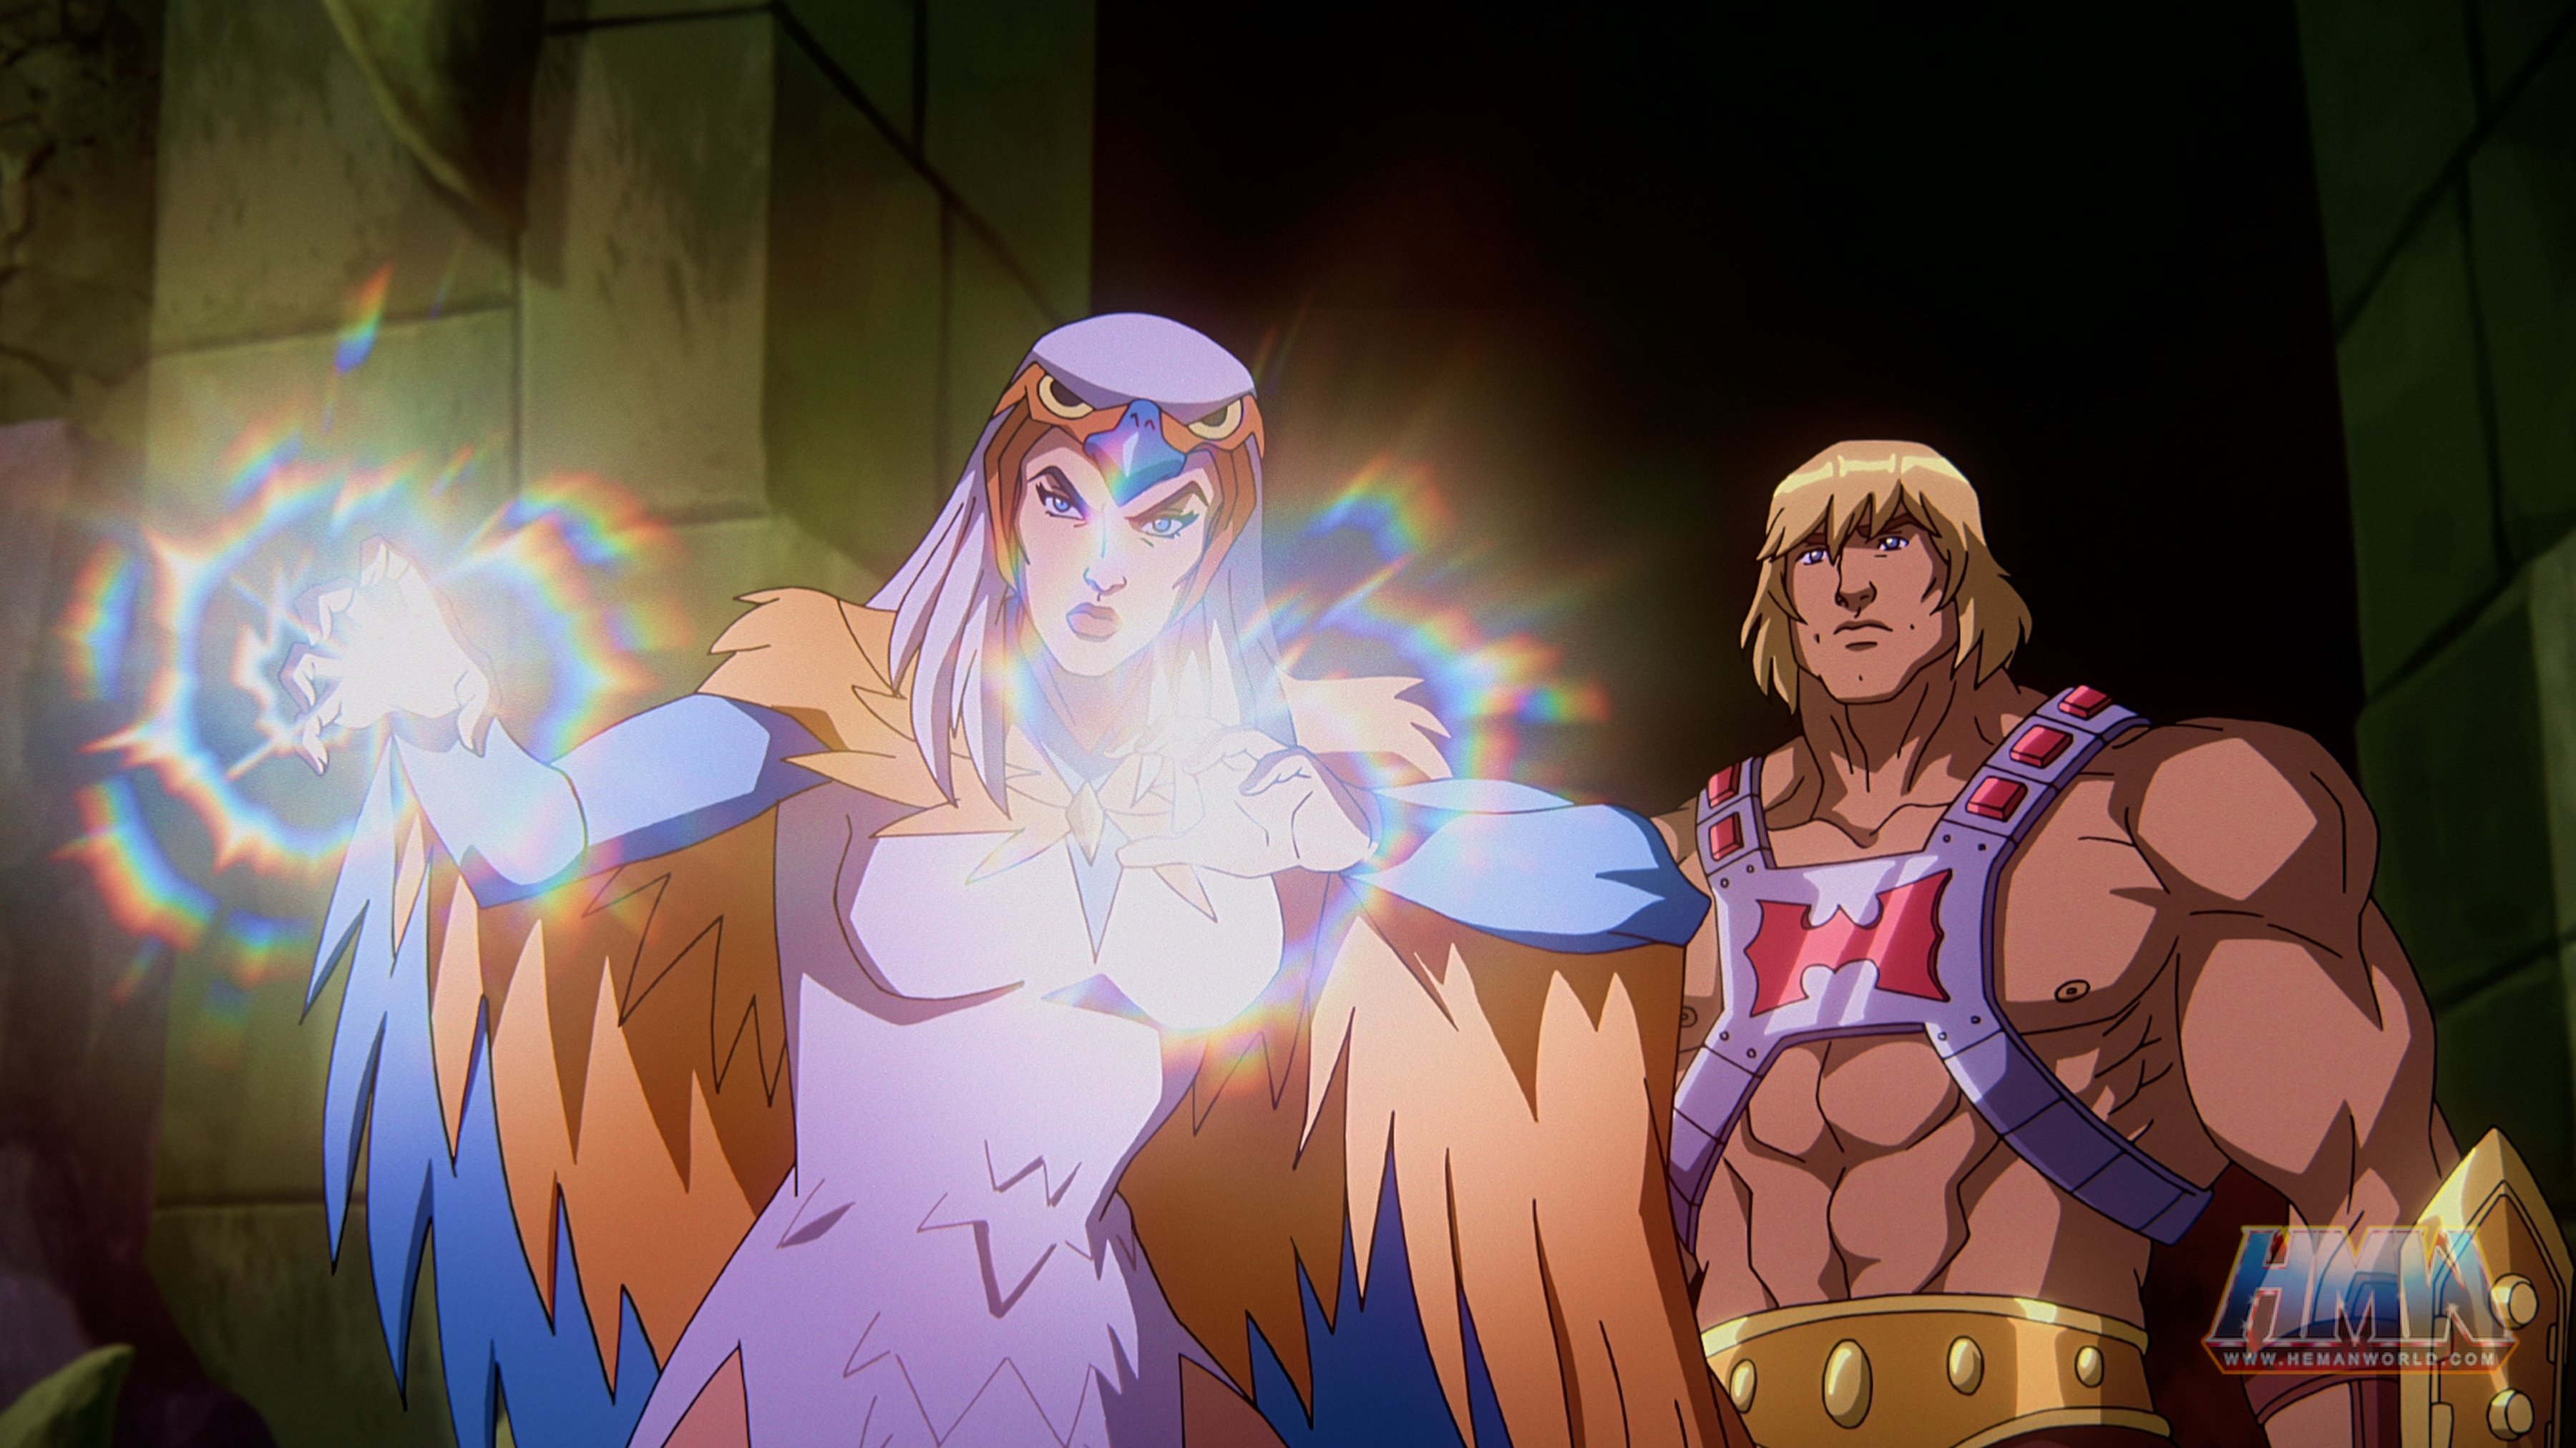 """In a CG animated still from Masters of the Universe: Revelation, He-Man (right) stands behind Sorceress (left) in a stone room lit only by the light coming from Sorceresses' hands. Sorceress has her palms outstretched in front of her and wears a white dress, a falcon-like hood over head and orange and blue wings. He-Man wears a silver chest plate with a red """"H"""" in the center, a golden armored belt and wrist plates."""